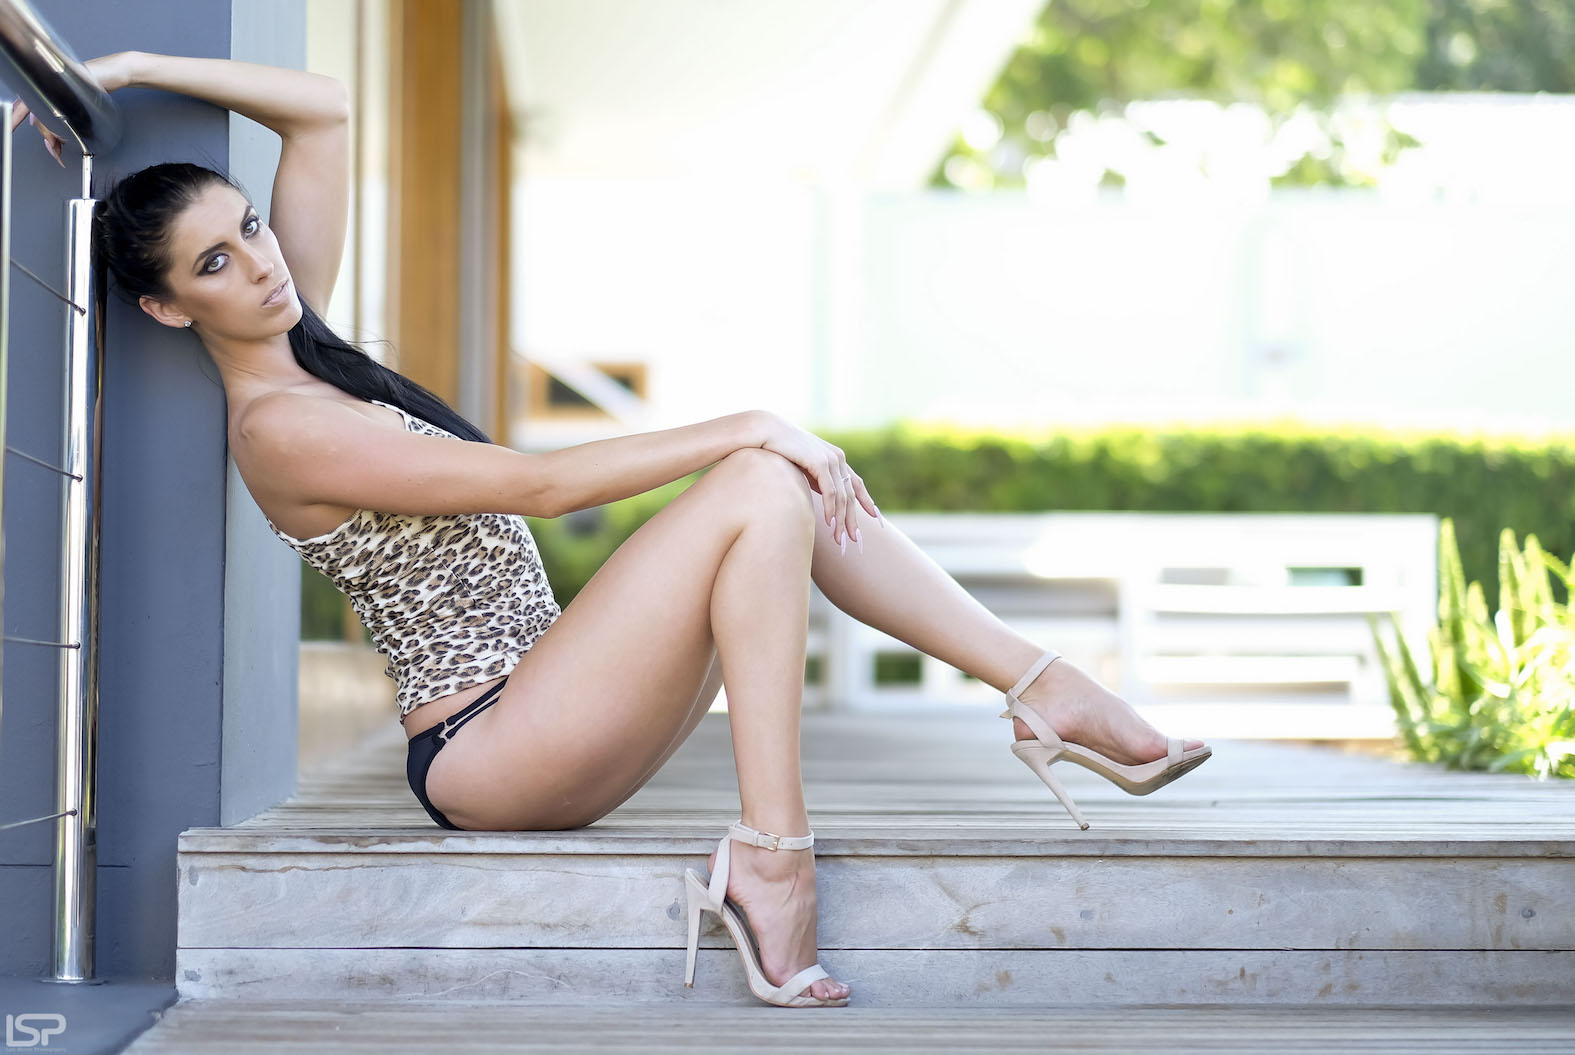 Our South African Babes feature with Nicole Halvey